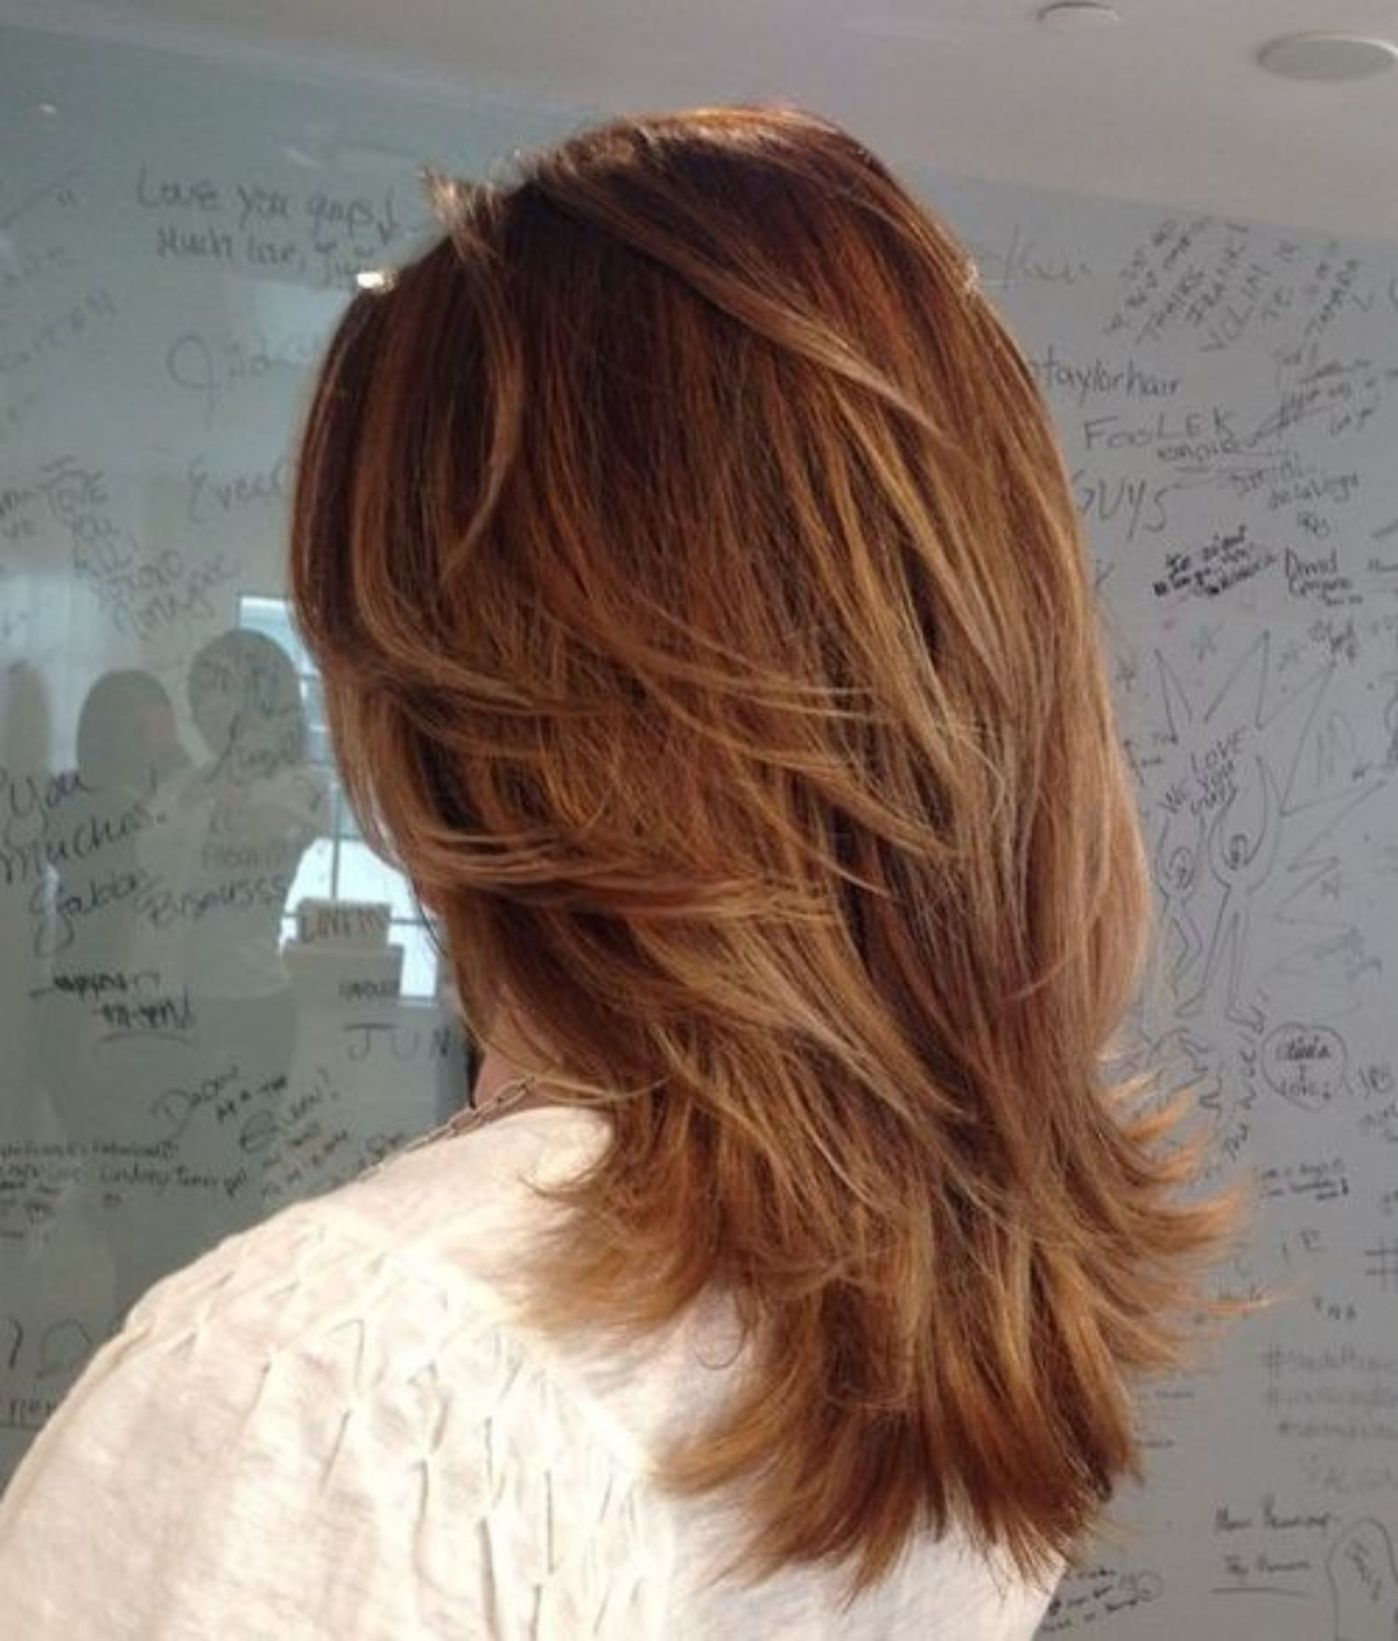 70 Brightest Medium Layered Haircuts To Light You Up Medium Layered Haircuts Haircuts For Medium Hair Hair Styles